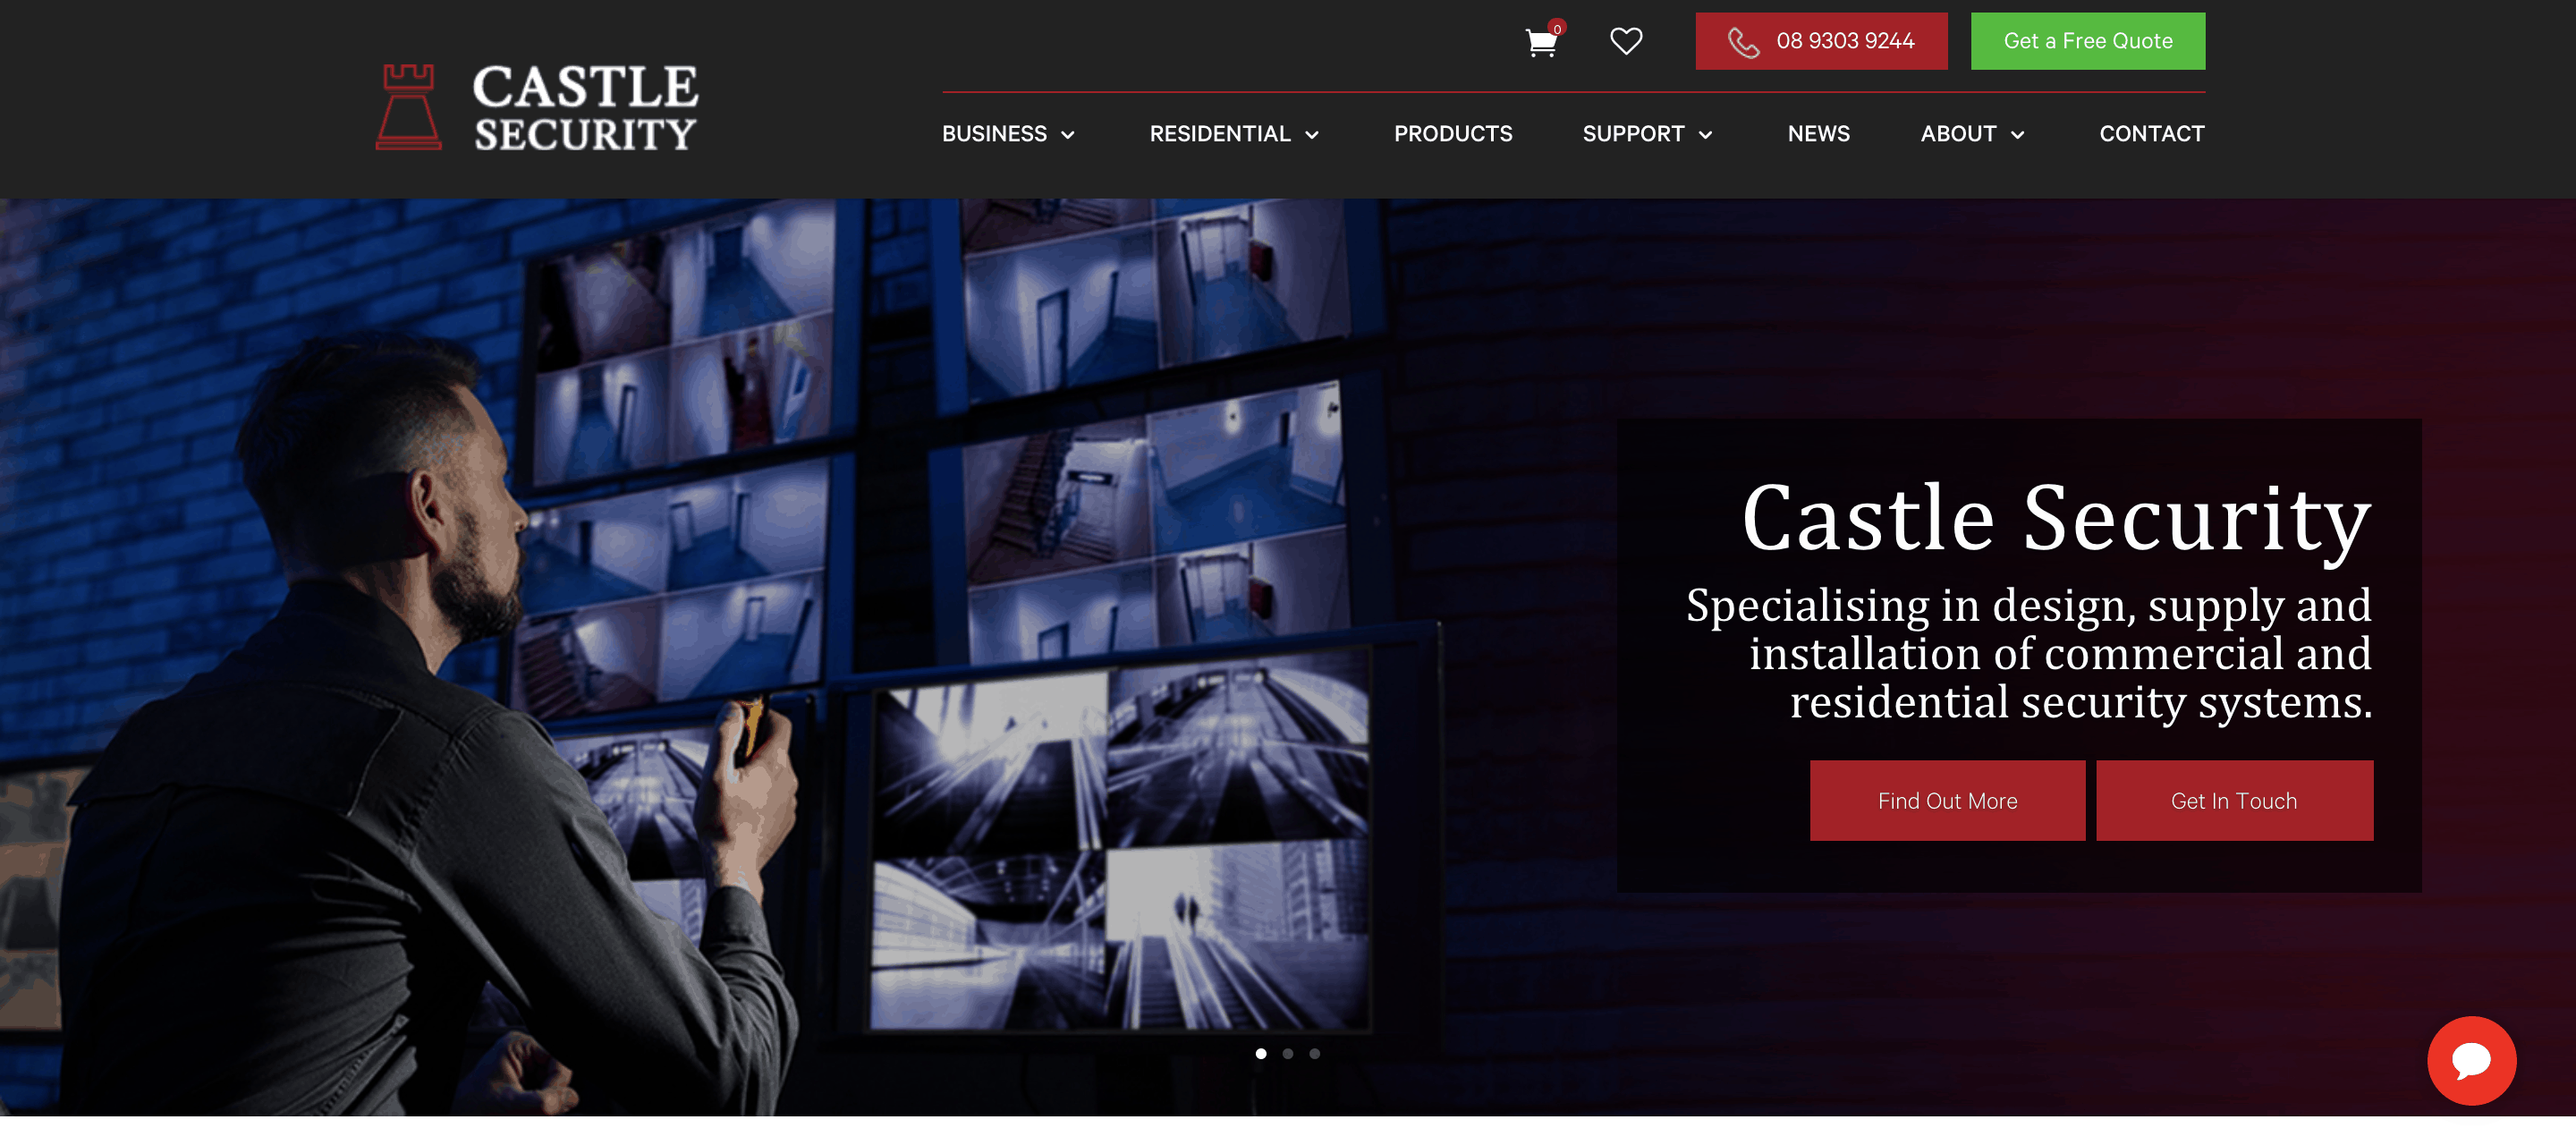 castle-security-homepage